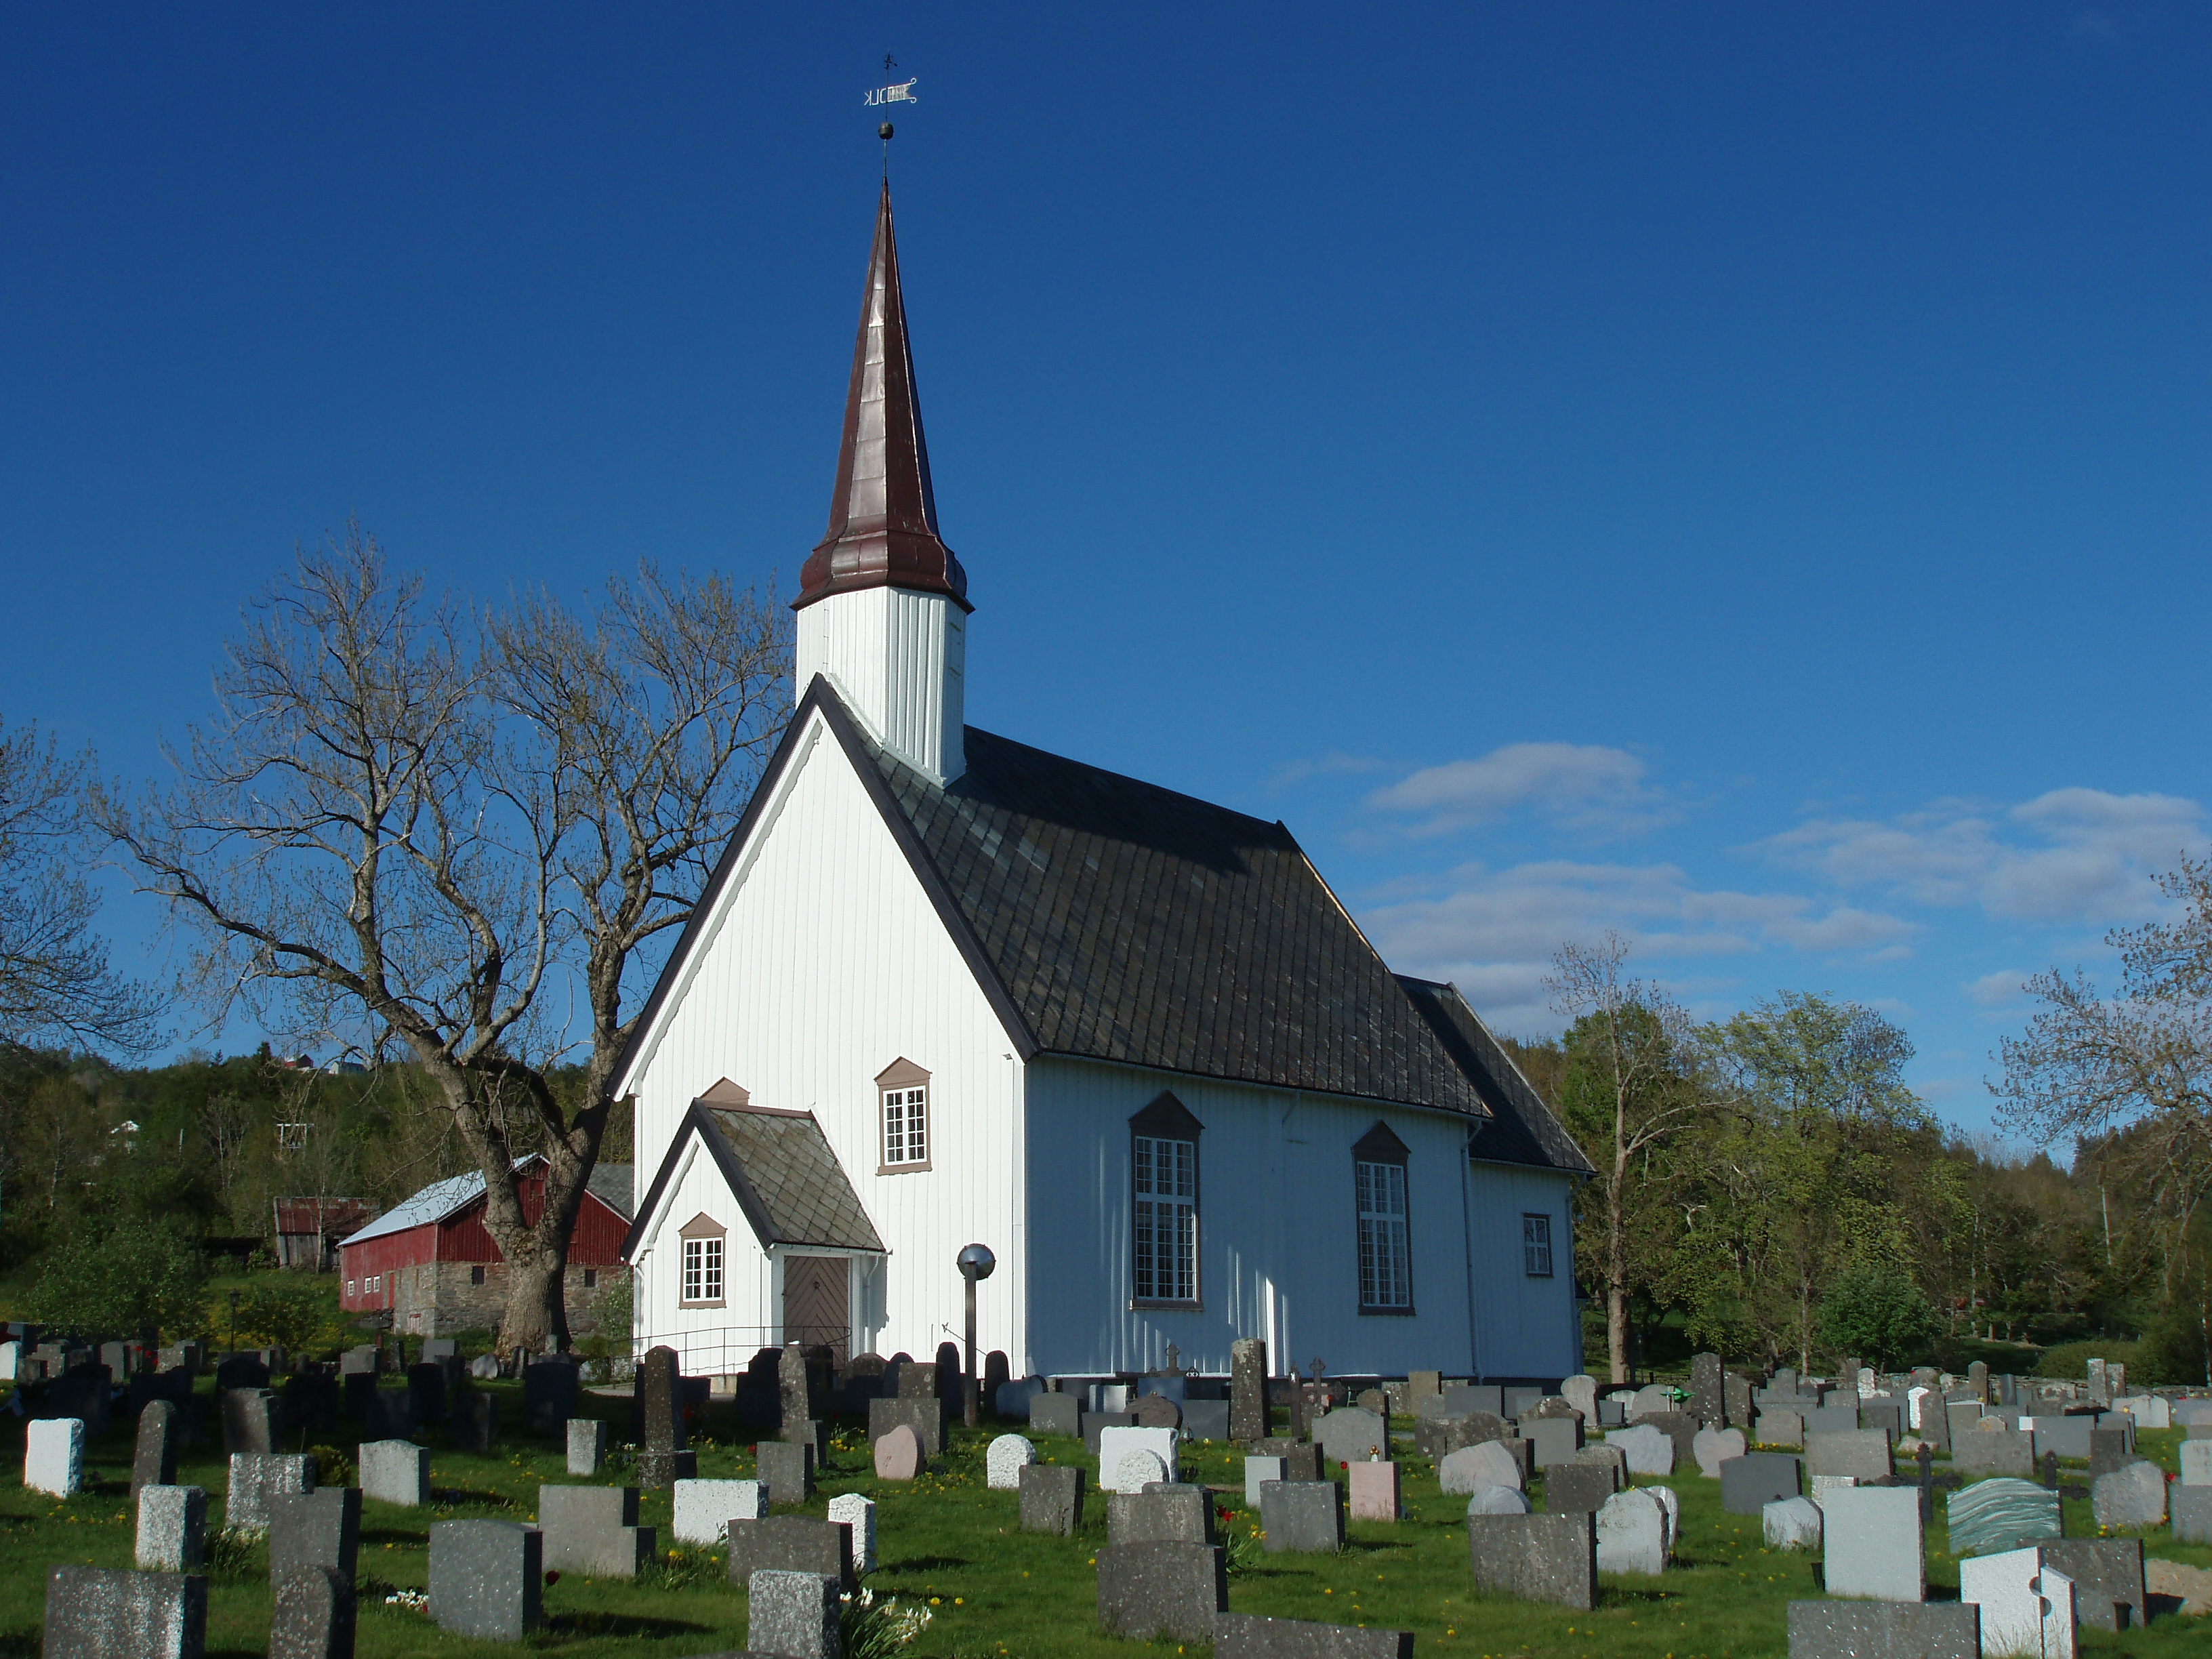 File:Leksvik-church-Norway.jpg - Wikimedia Commons